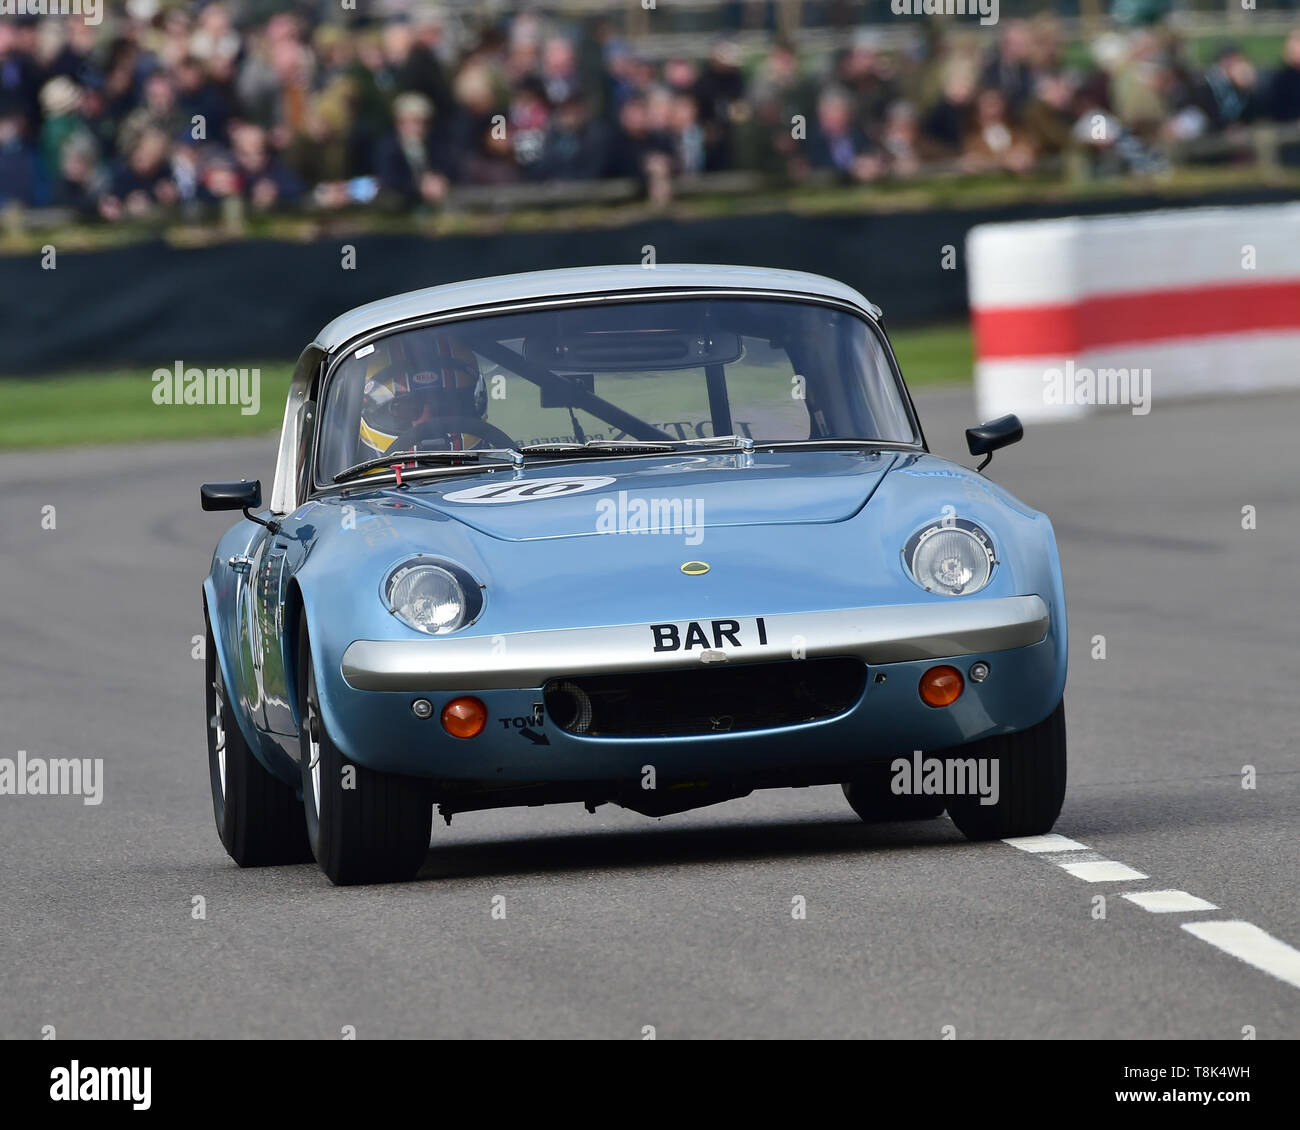 Robi Bernberg, Ian Bankhurst, Lotus Elan 26R, Graham Hill Trophy, Closed cockpit GT cars, Prototype cars, Spirit of the RAC TT Races 1960-1964, 77th M - Stock Image